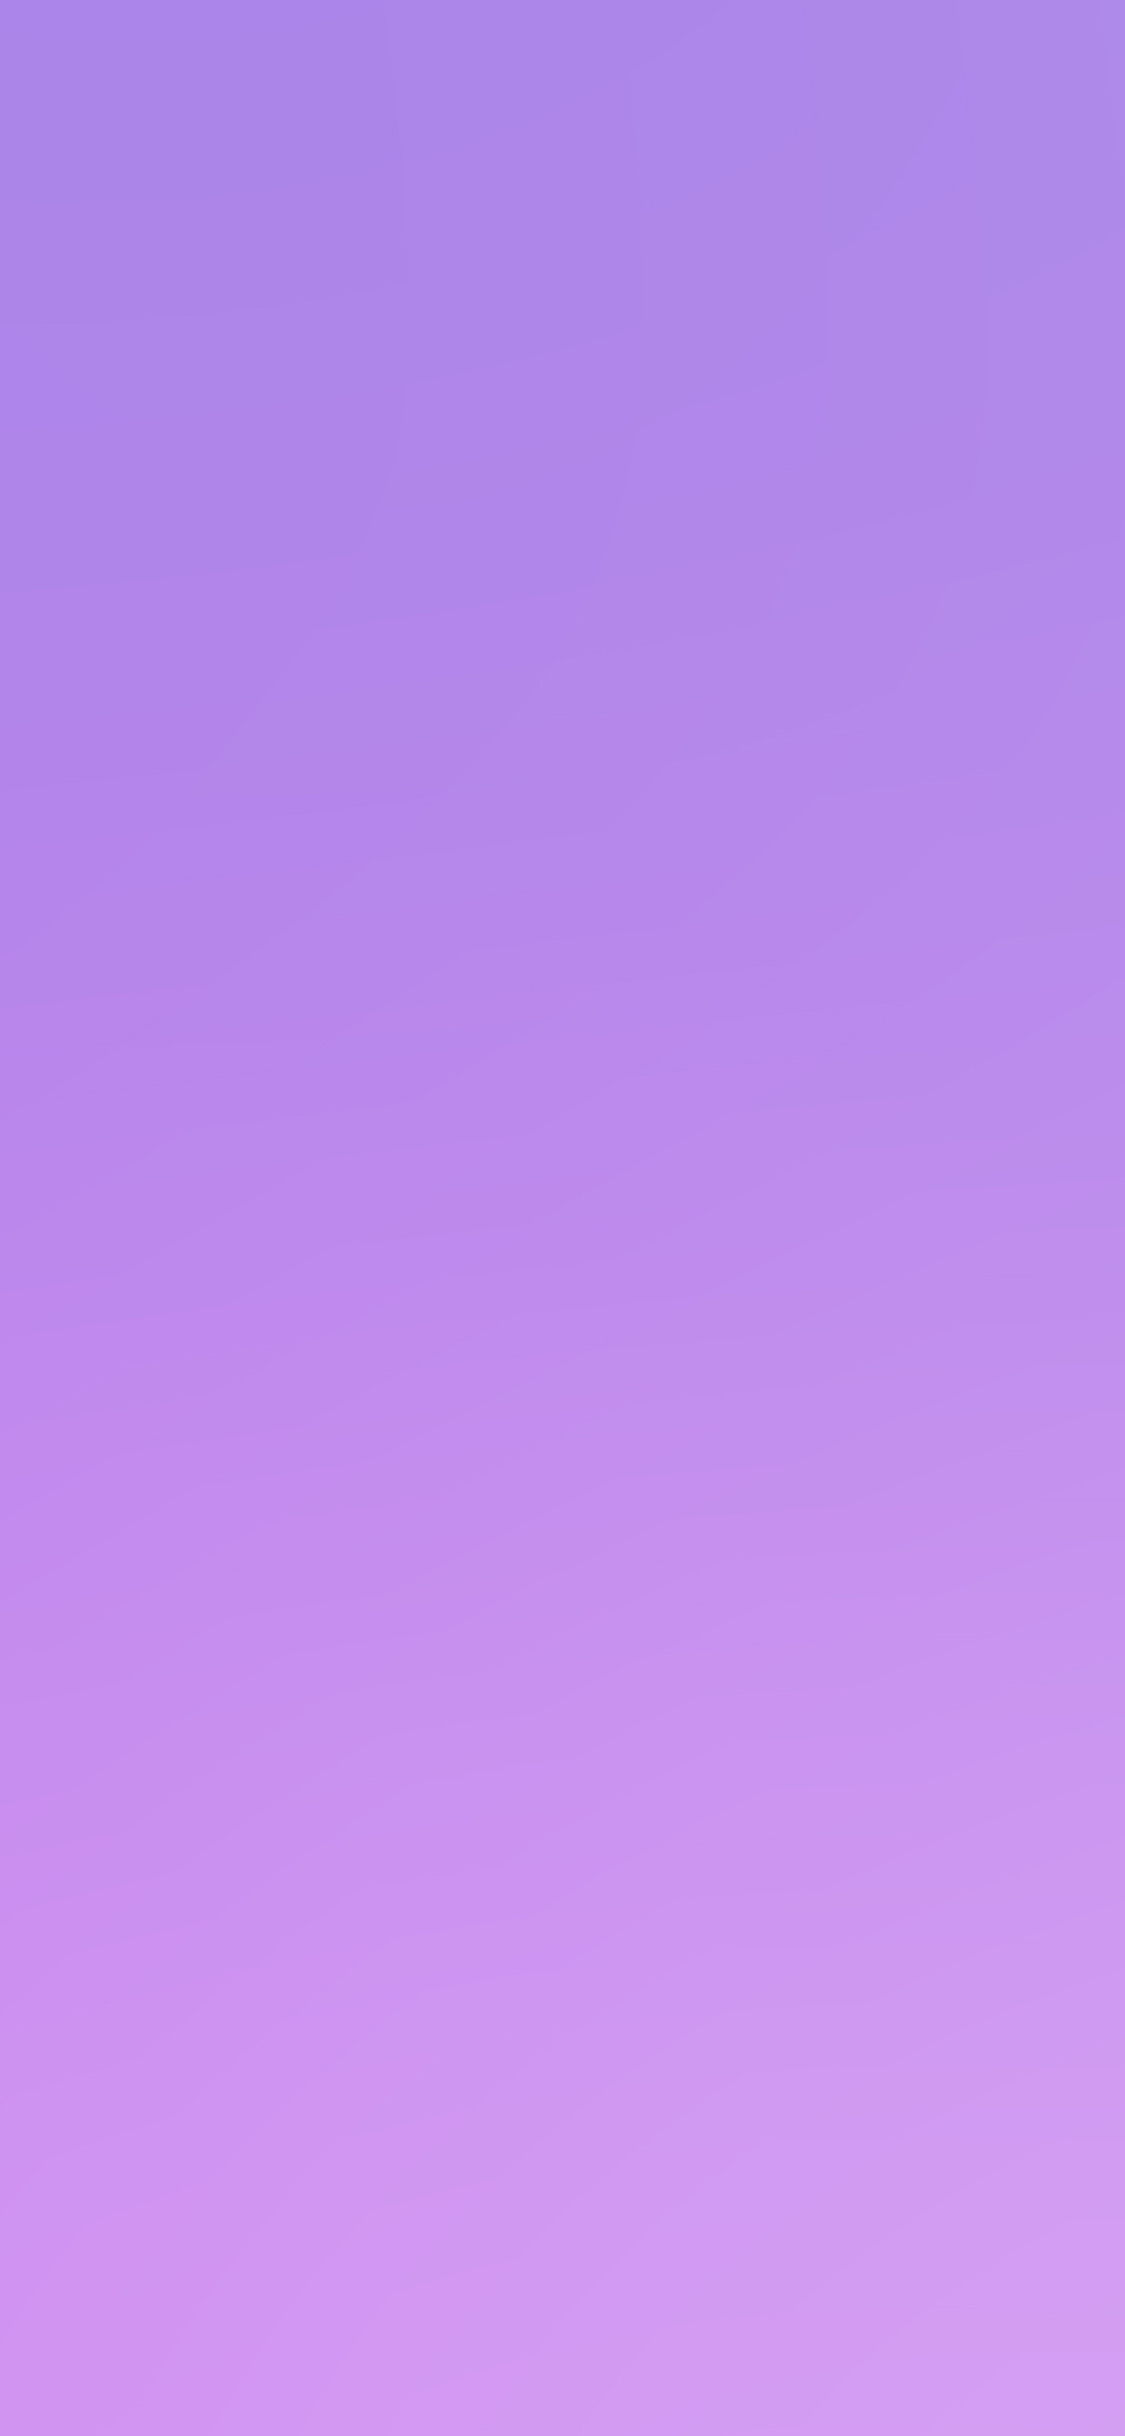 Papers Co Iphone Wallpaper Se53 Baby Purple Gradation Blur